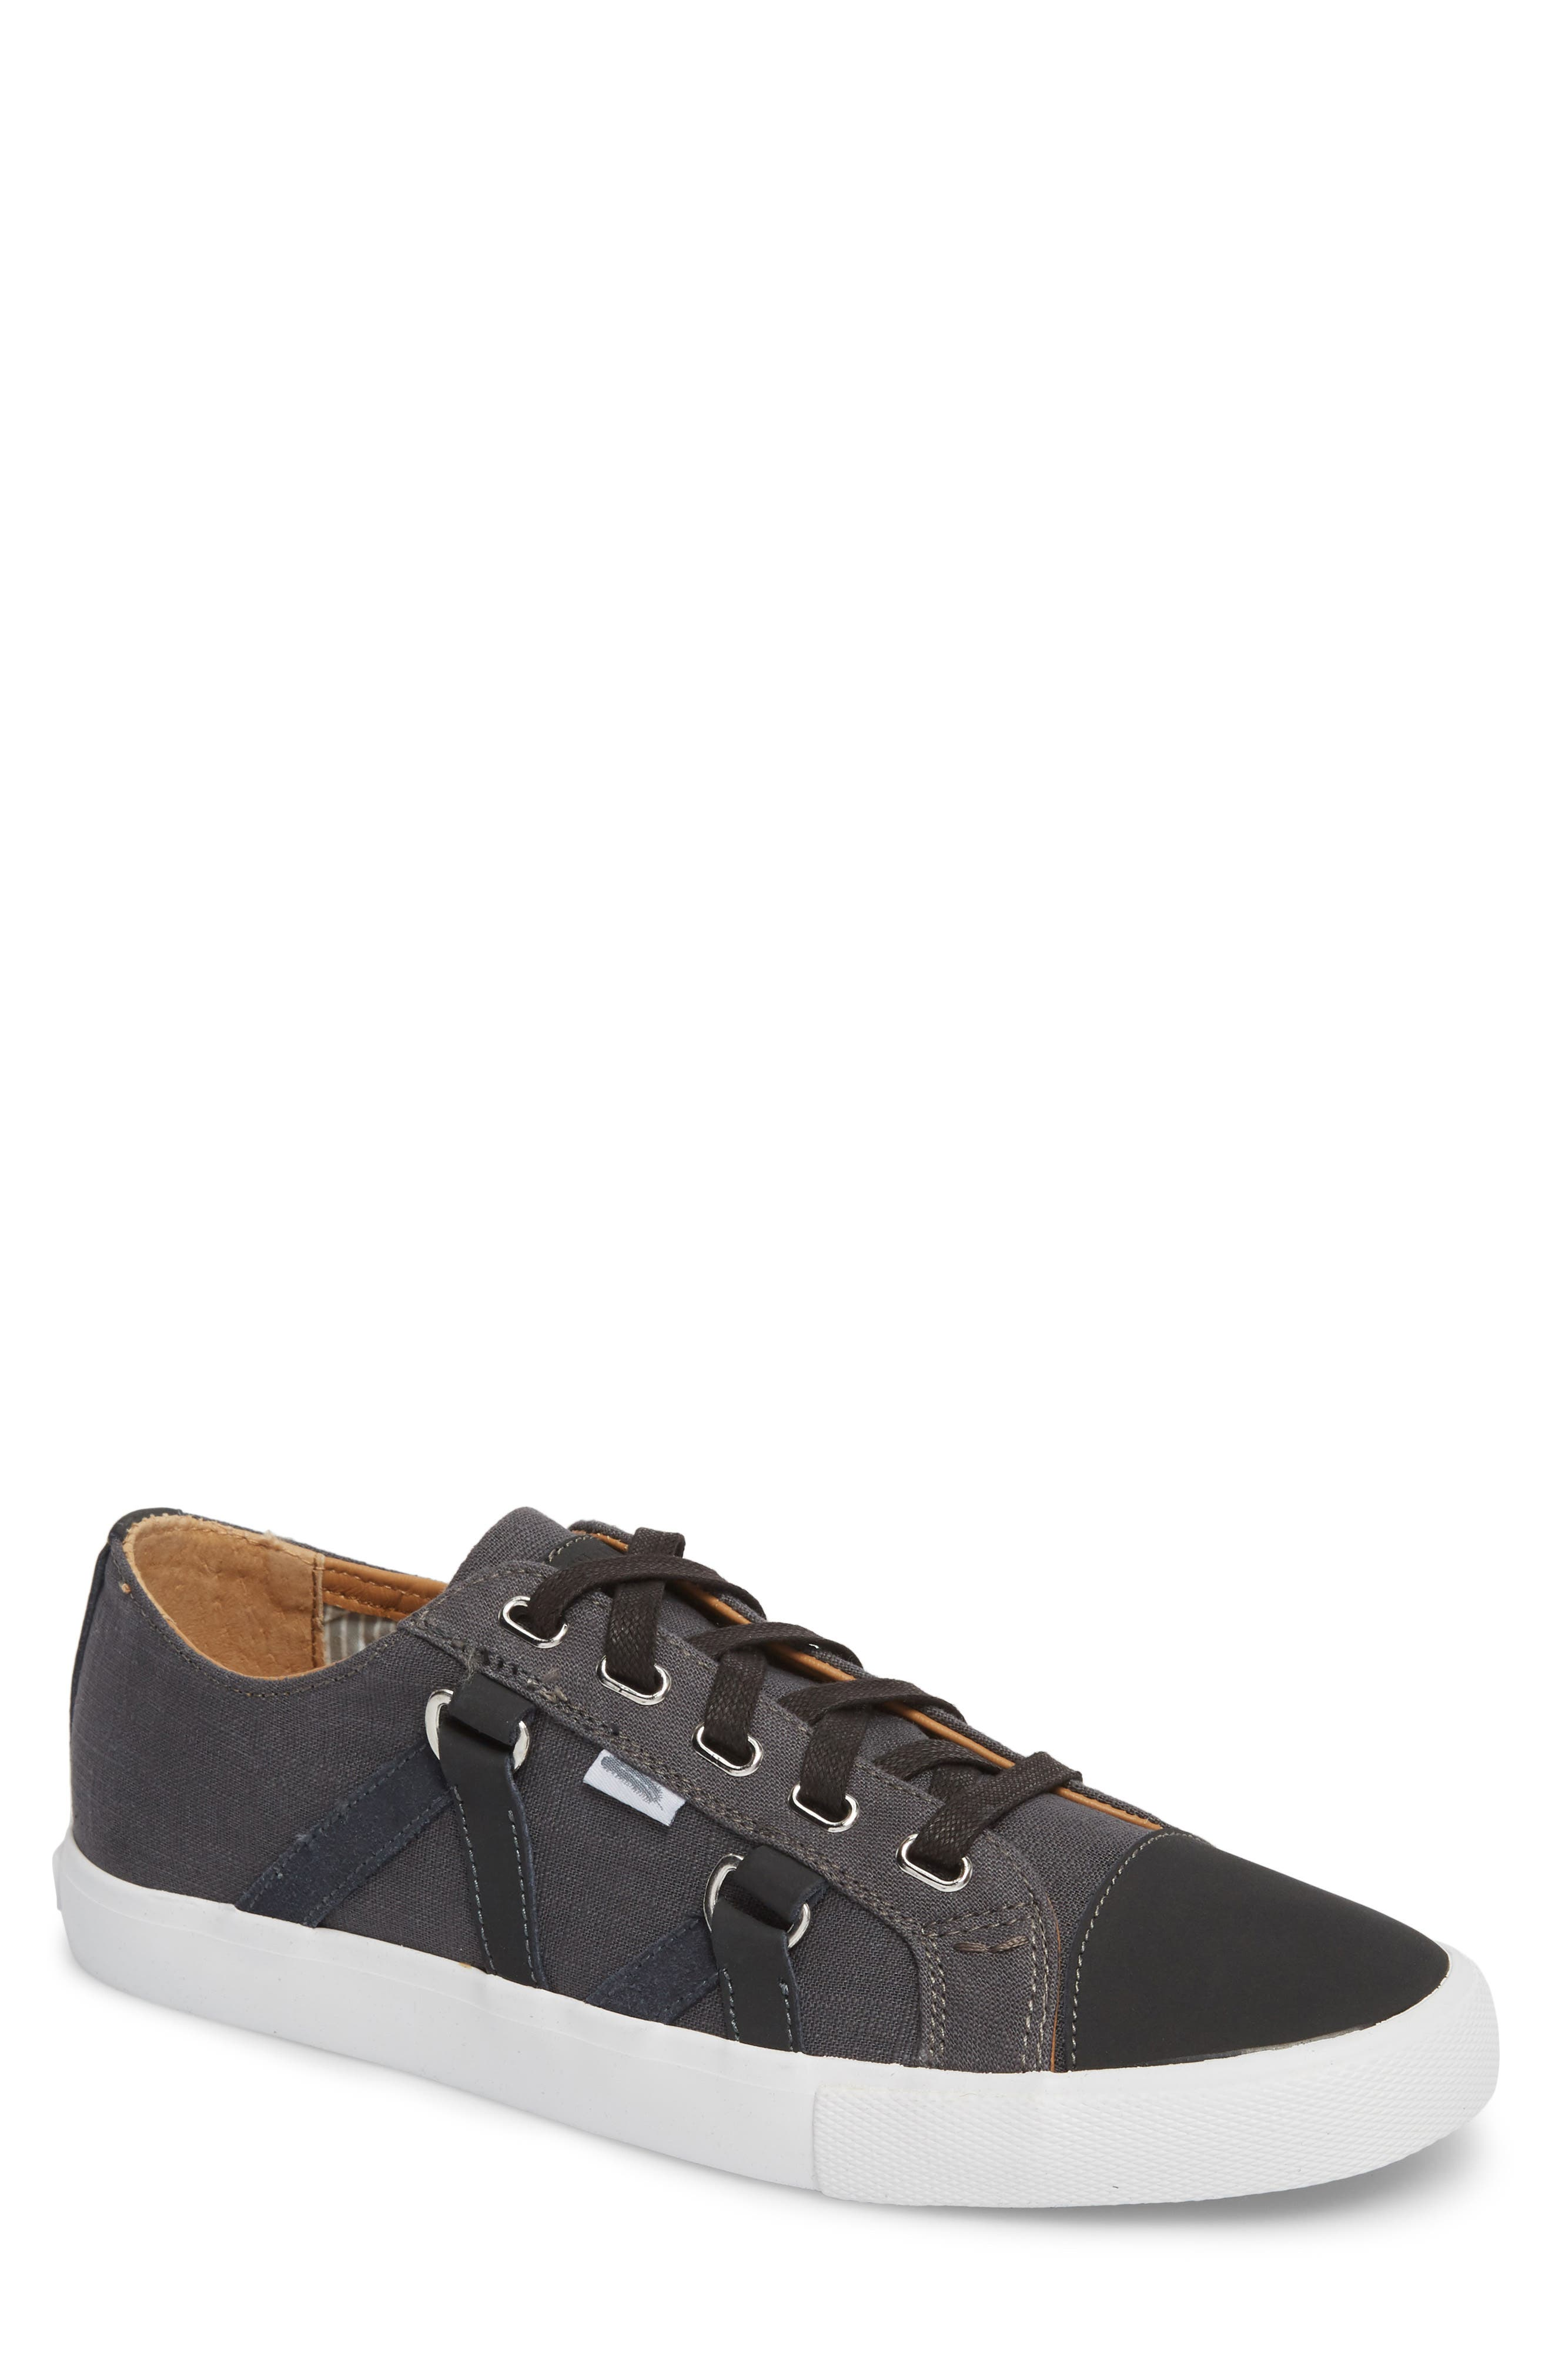 Signature Low Top Sneaker,                             Main thumbnail 1, color,                             CHARCOAL CANVAS